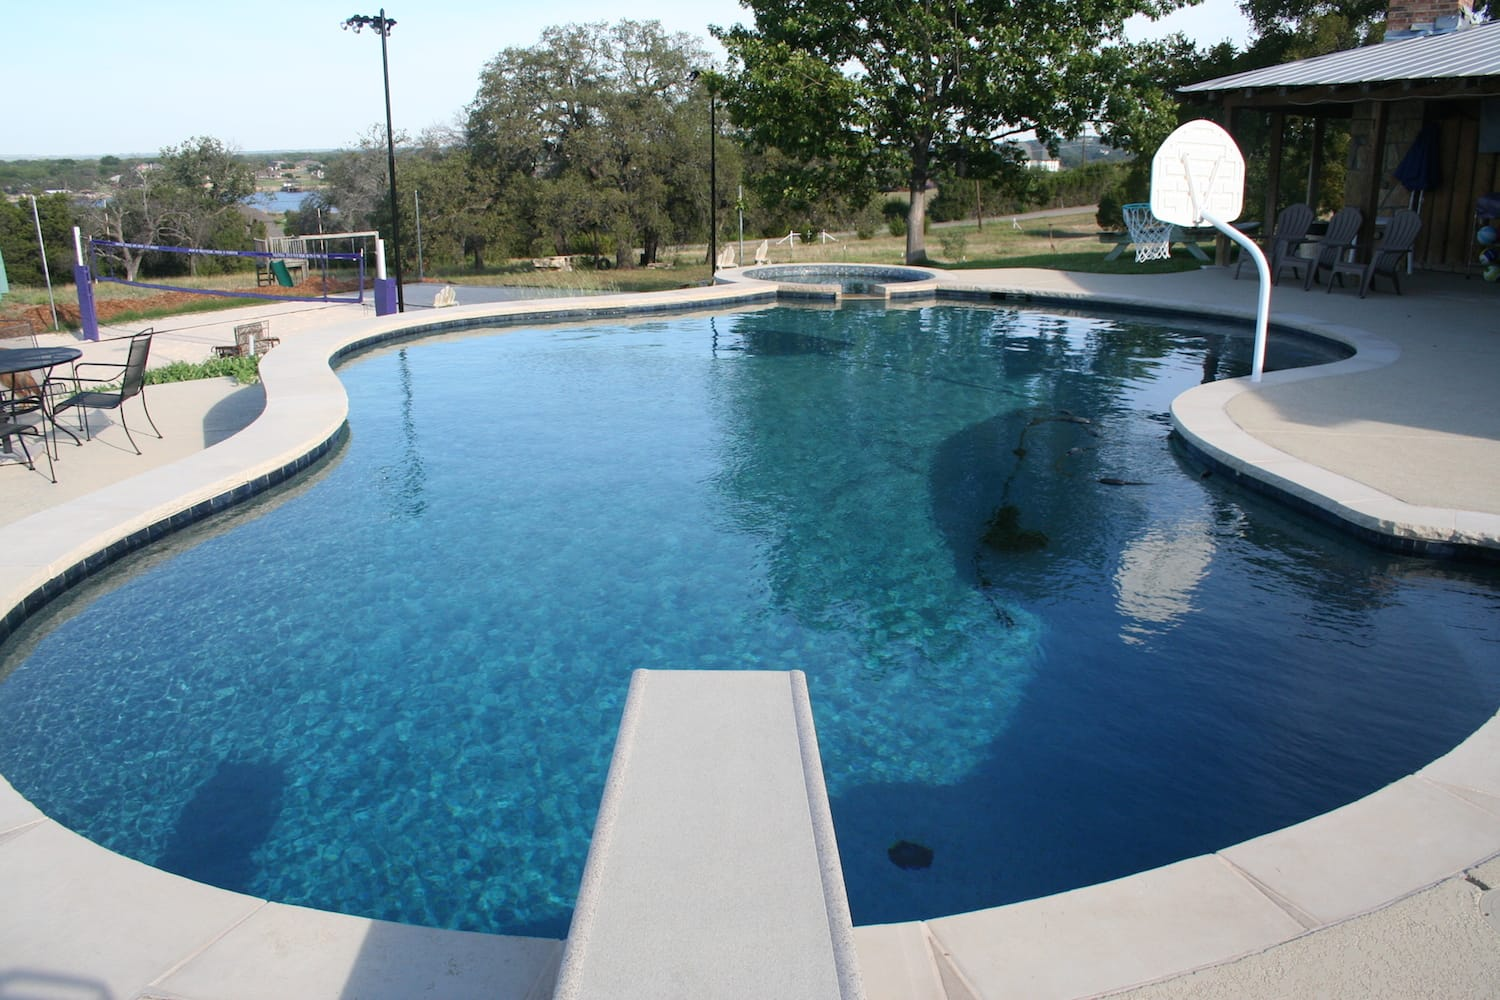 satin-matrix-antigua-pool-finish-24